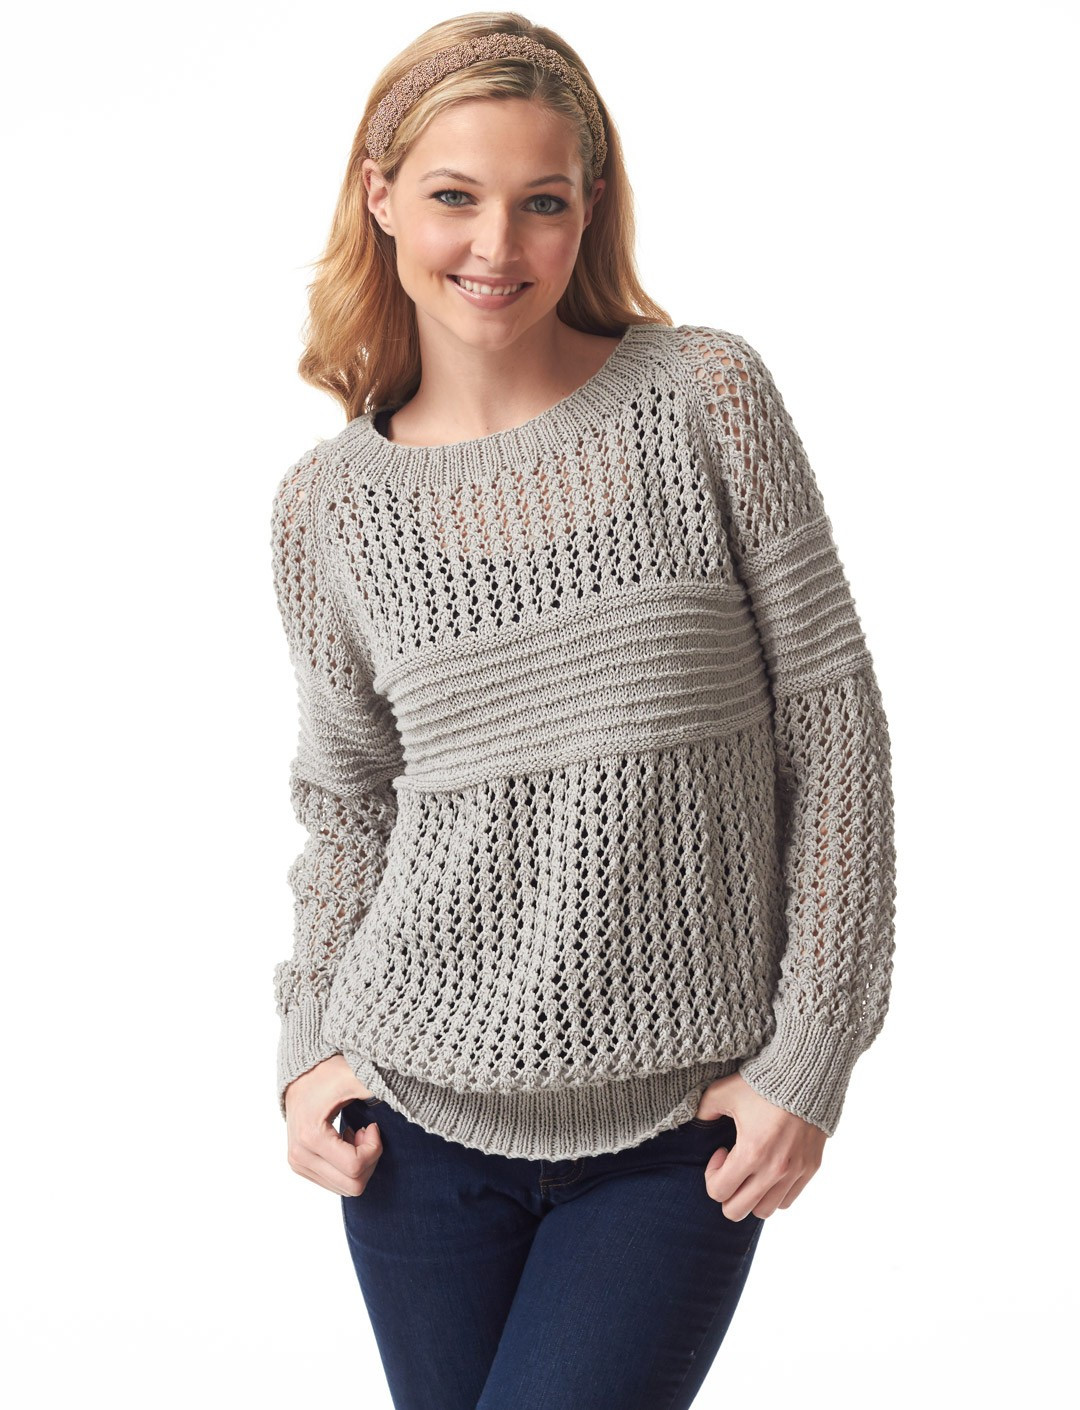 Lovely Lace Pullover Knitting Patterns Crochet Pullover Of Top 47 Images Crochet Pullover